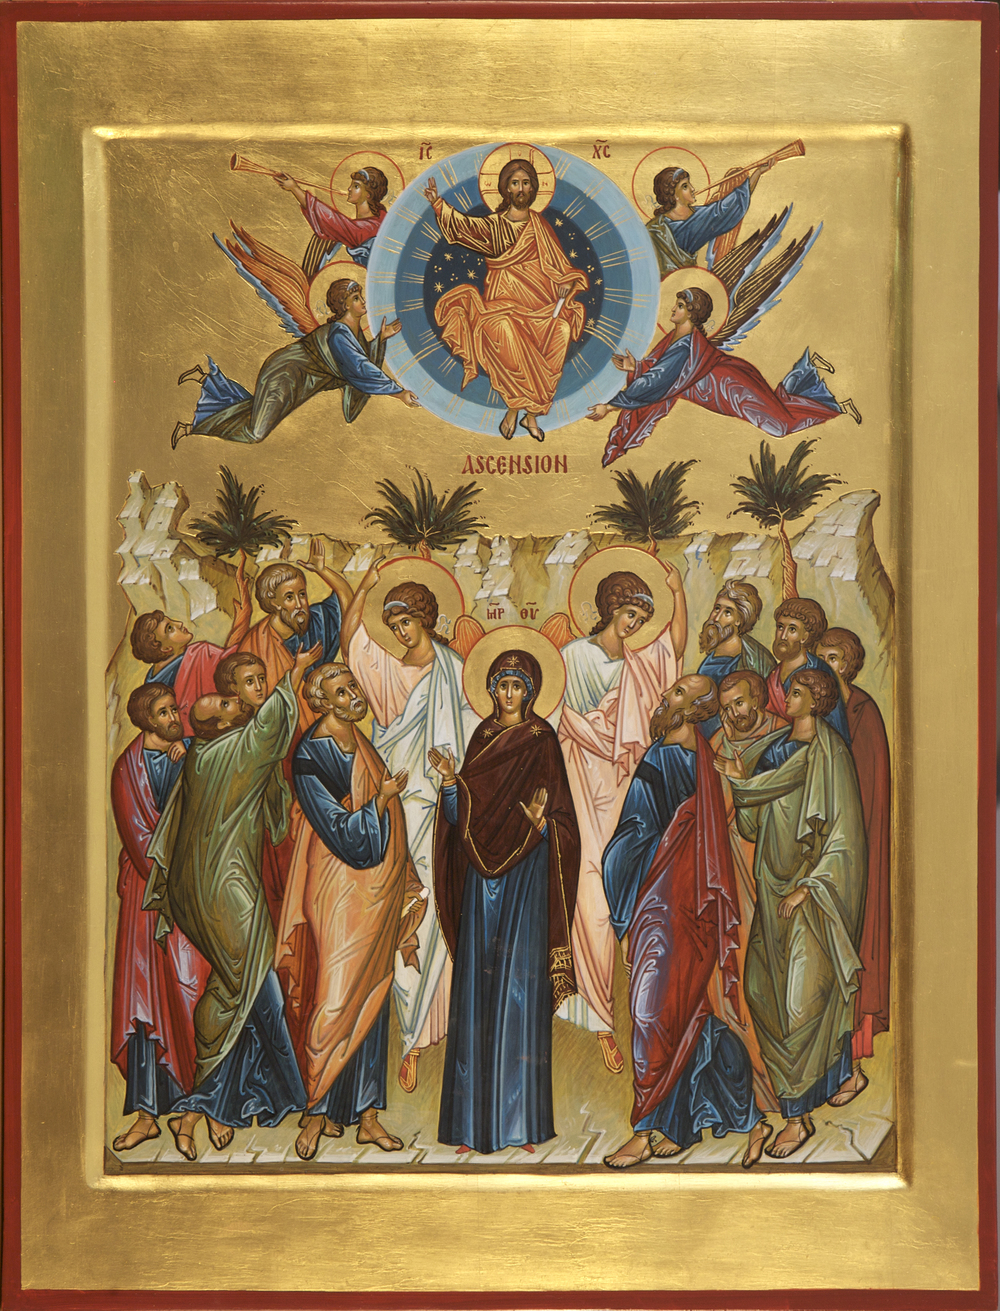 """O Christ God, You have ascended in Glory,     Granting Joy to Your disciples by the promise of the Holy Spirit,       Through the blessing they were assured,     That You are the Son of God,   the Redeemer of the World!"""